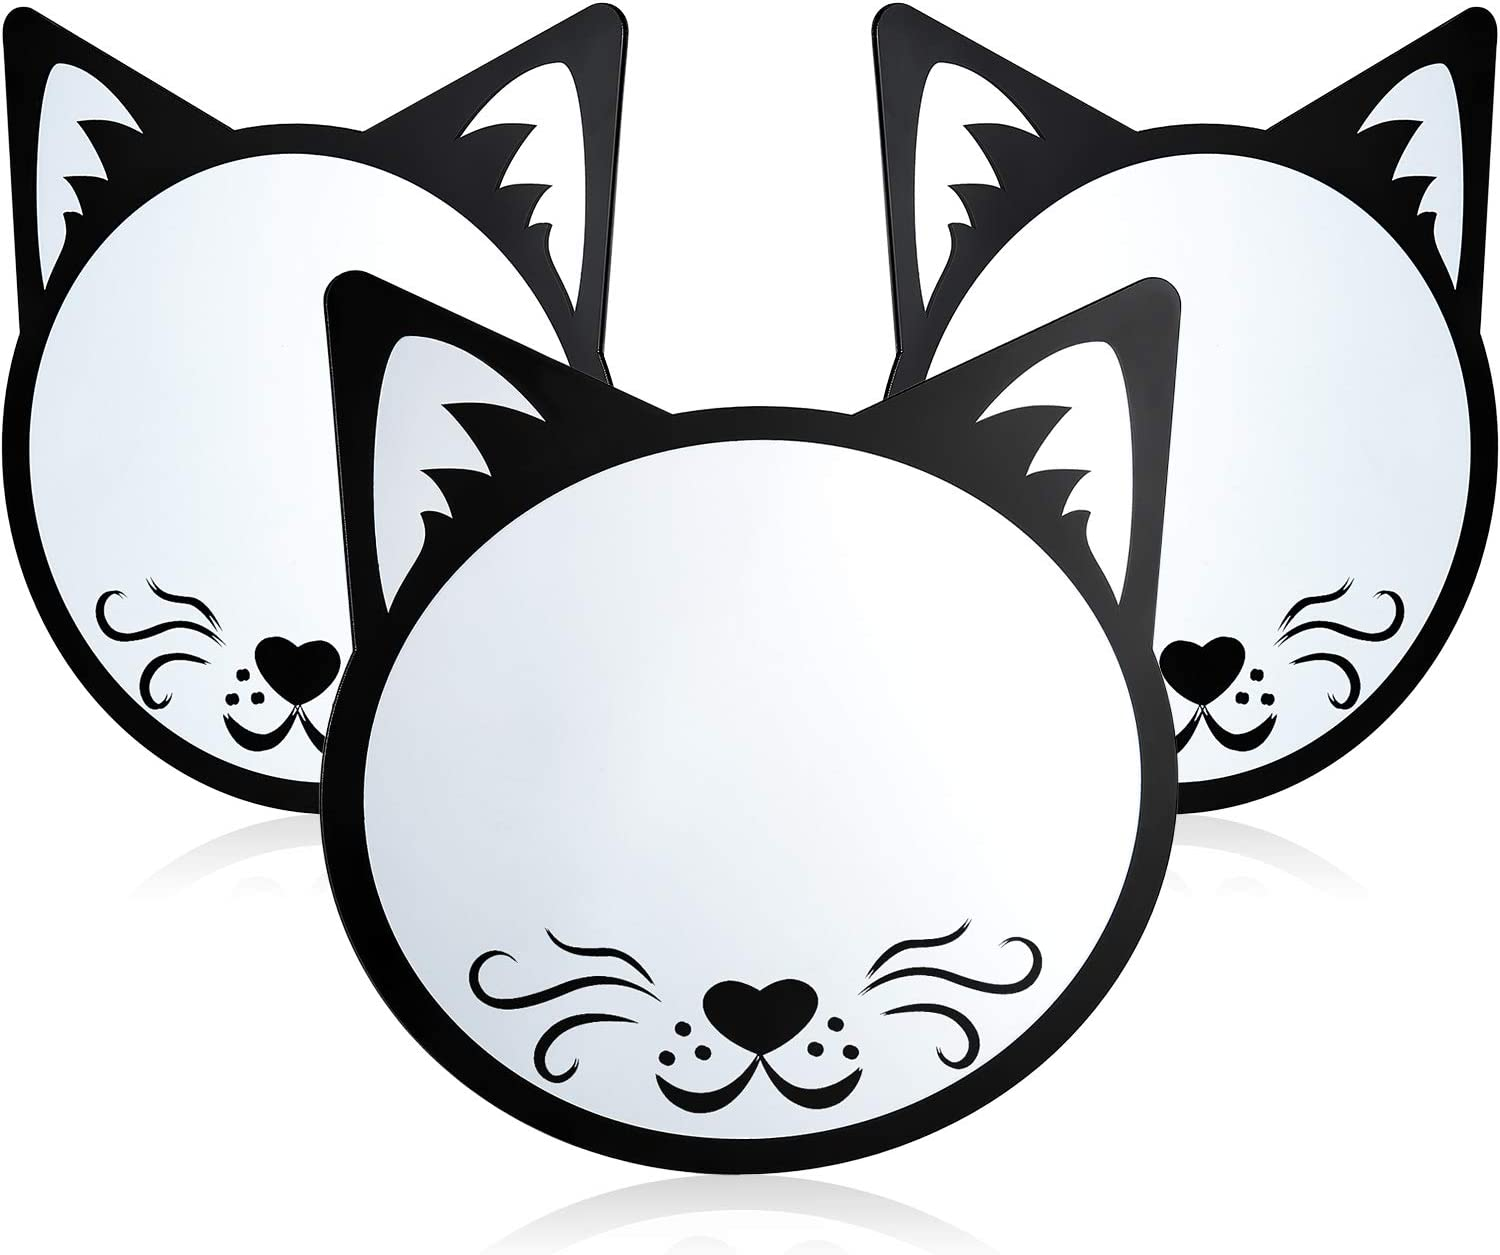 3 Pieces Magnetic Locker Mirrors Cute Cat Magnetic Mirror Cat Shape Magnetic Mirrors for School Locker Household Refrigerator Bathroom (Black)